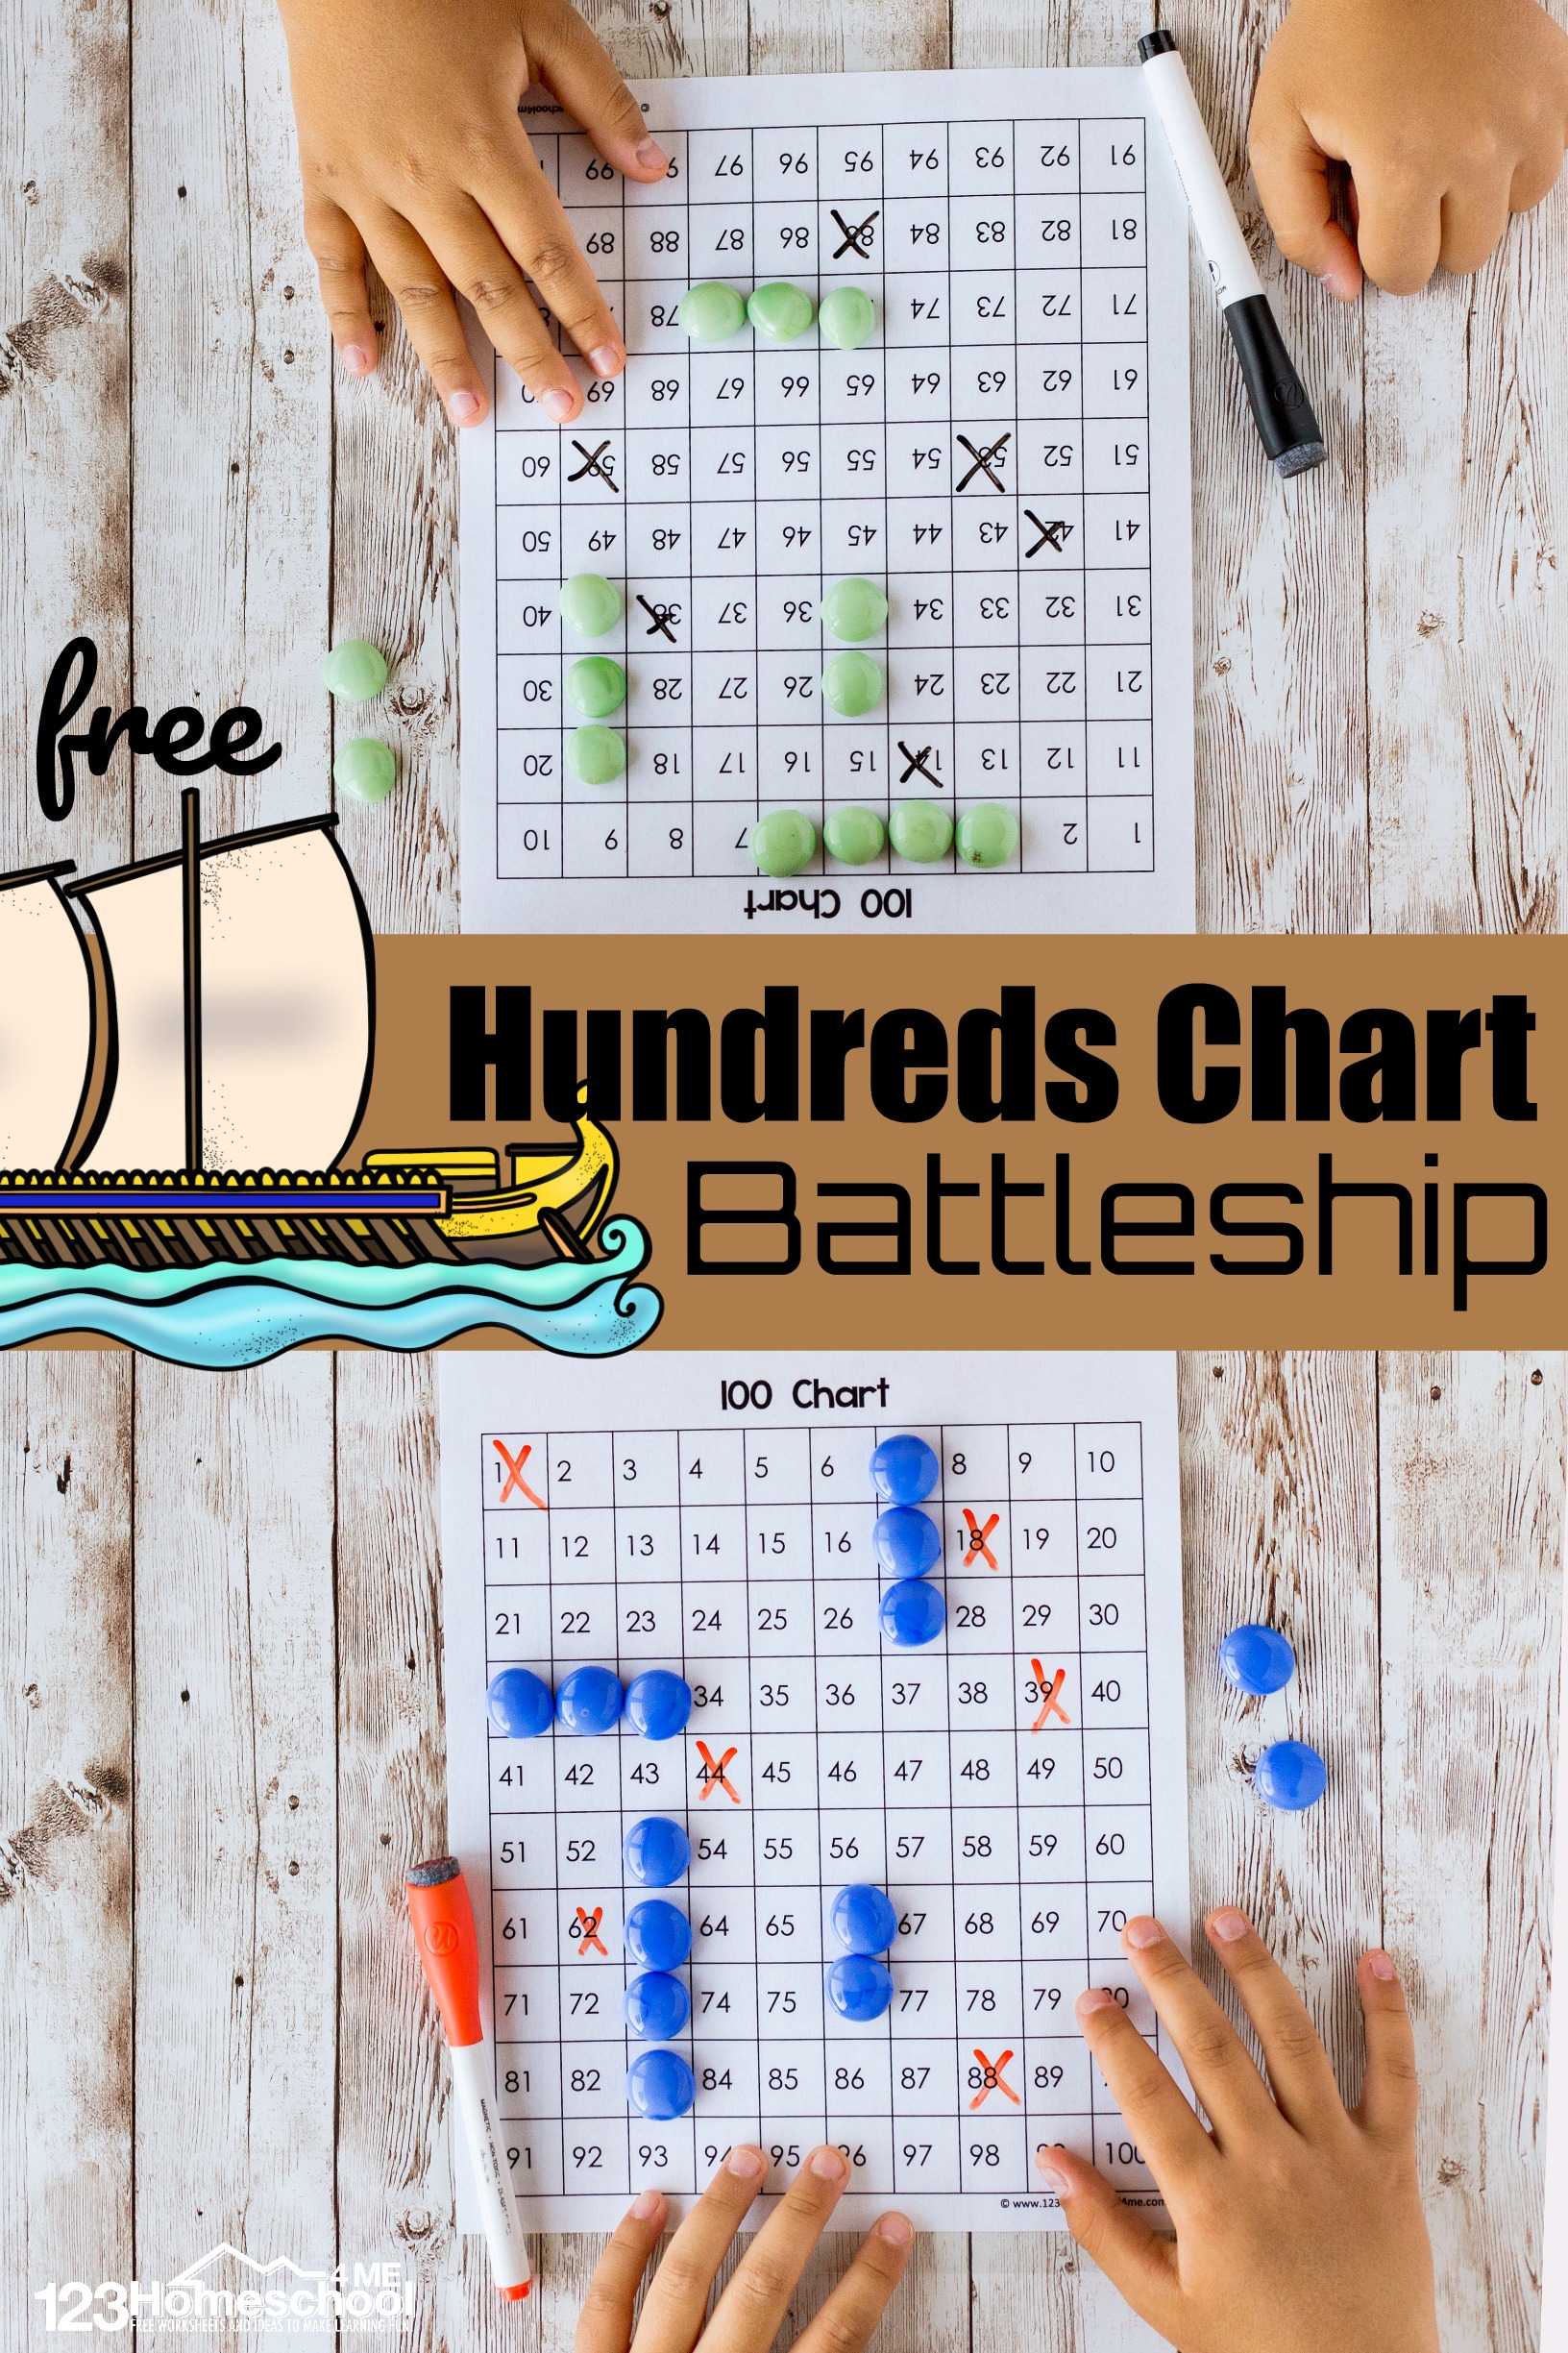 hight resolution of FREE Hundreds Chart Battleship - a Counting to 100 Game